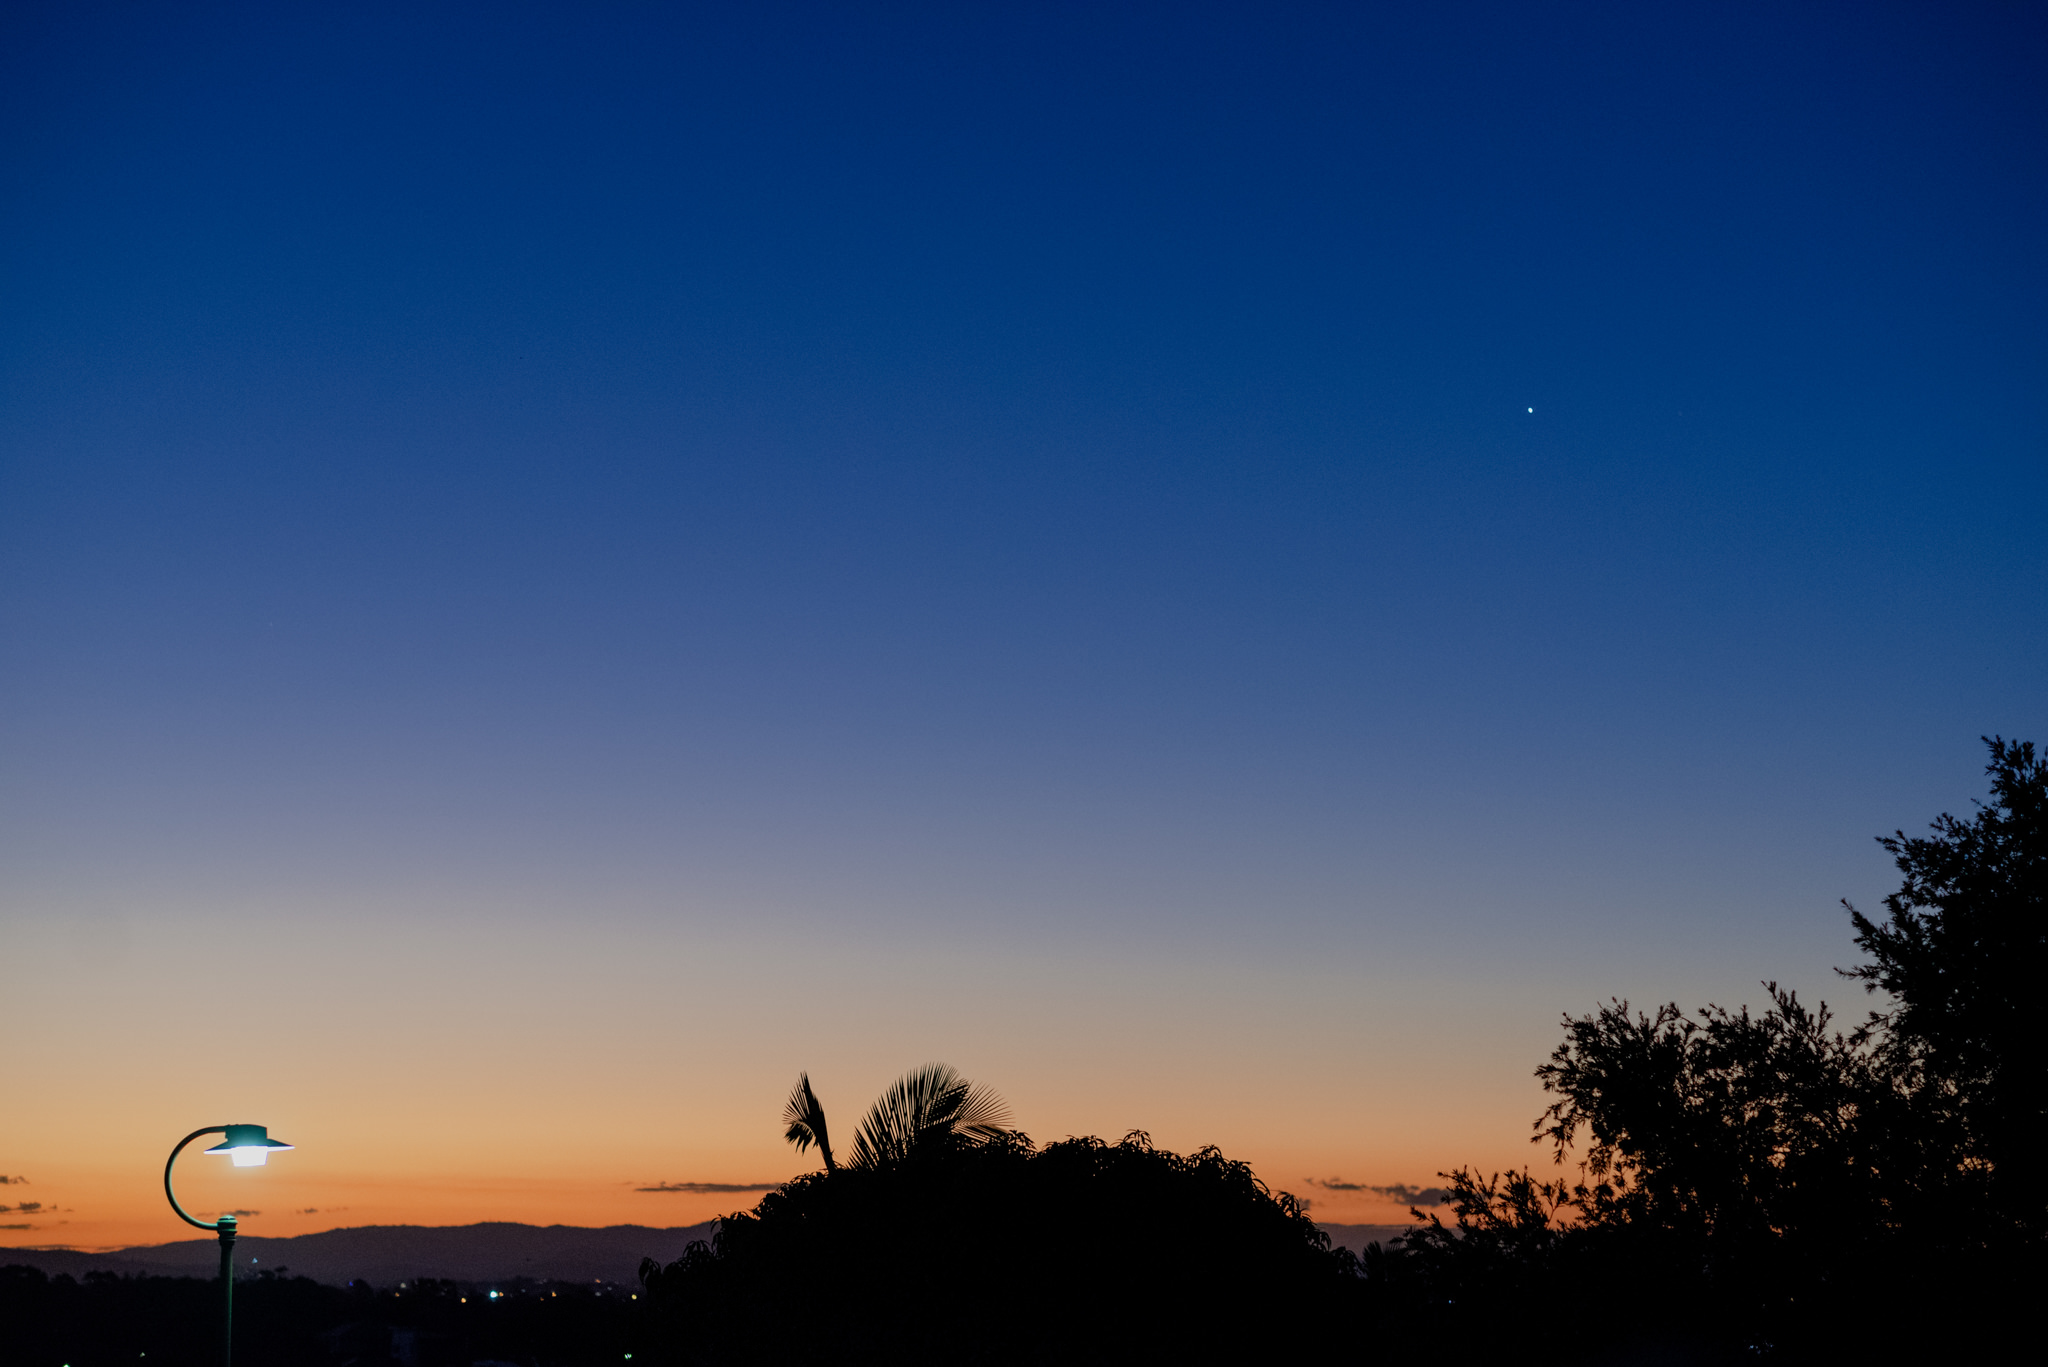 A rich orange and blue sky with a single star shining